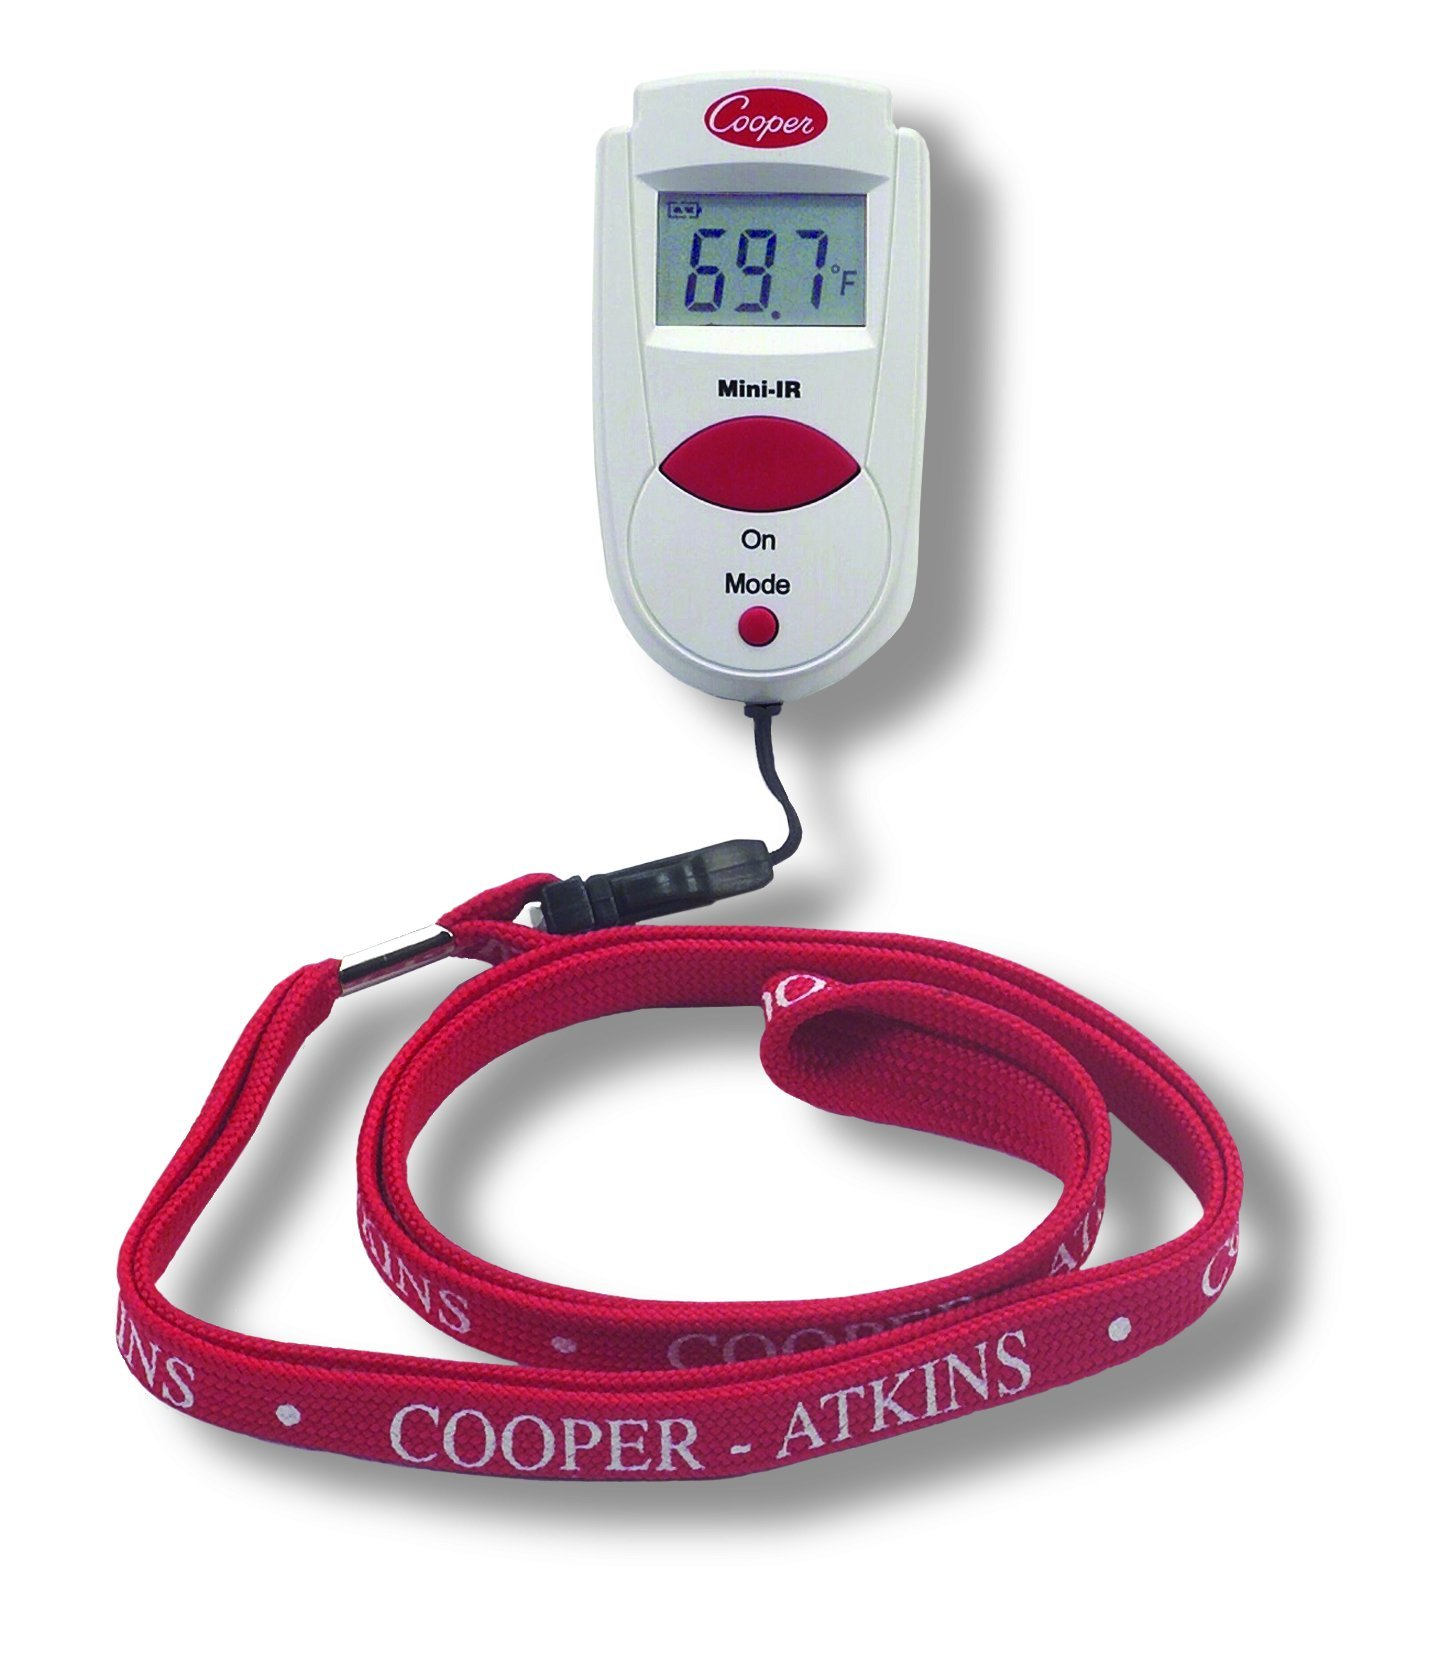 -27//428F Temperature Range by Cooper RoHS and WEEE Certified CE Cooper-Atkins 470-0-8 Digital Mini Infrared Thermometer with Neck Lanyard